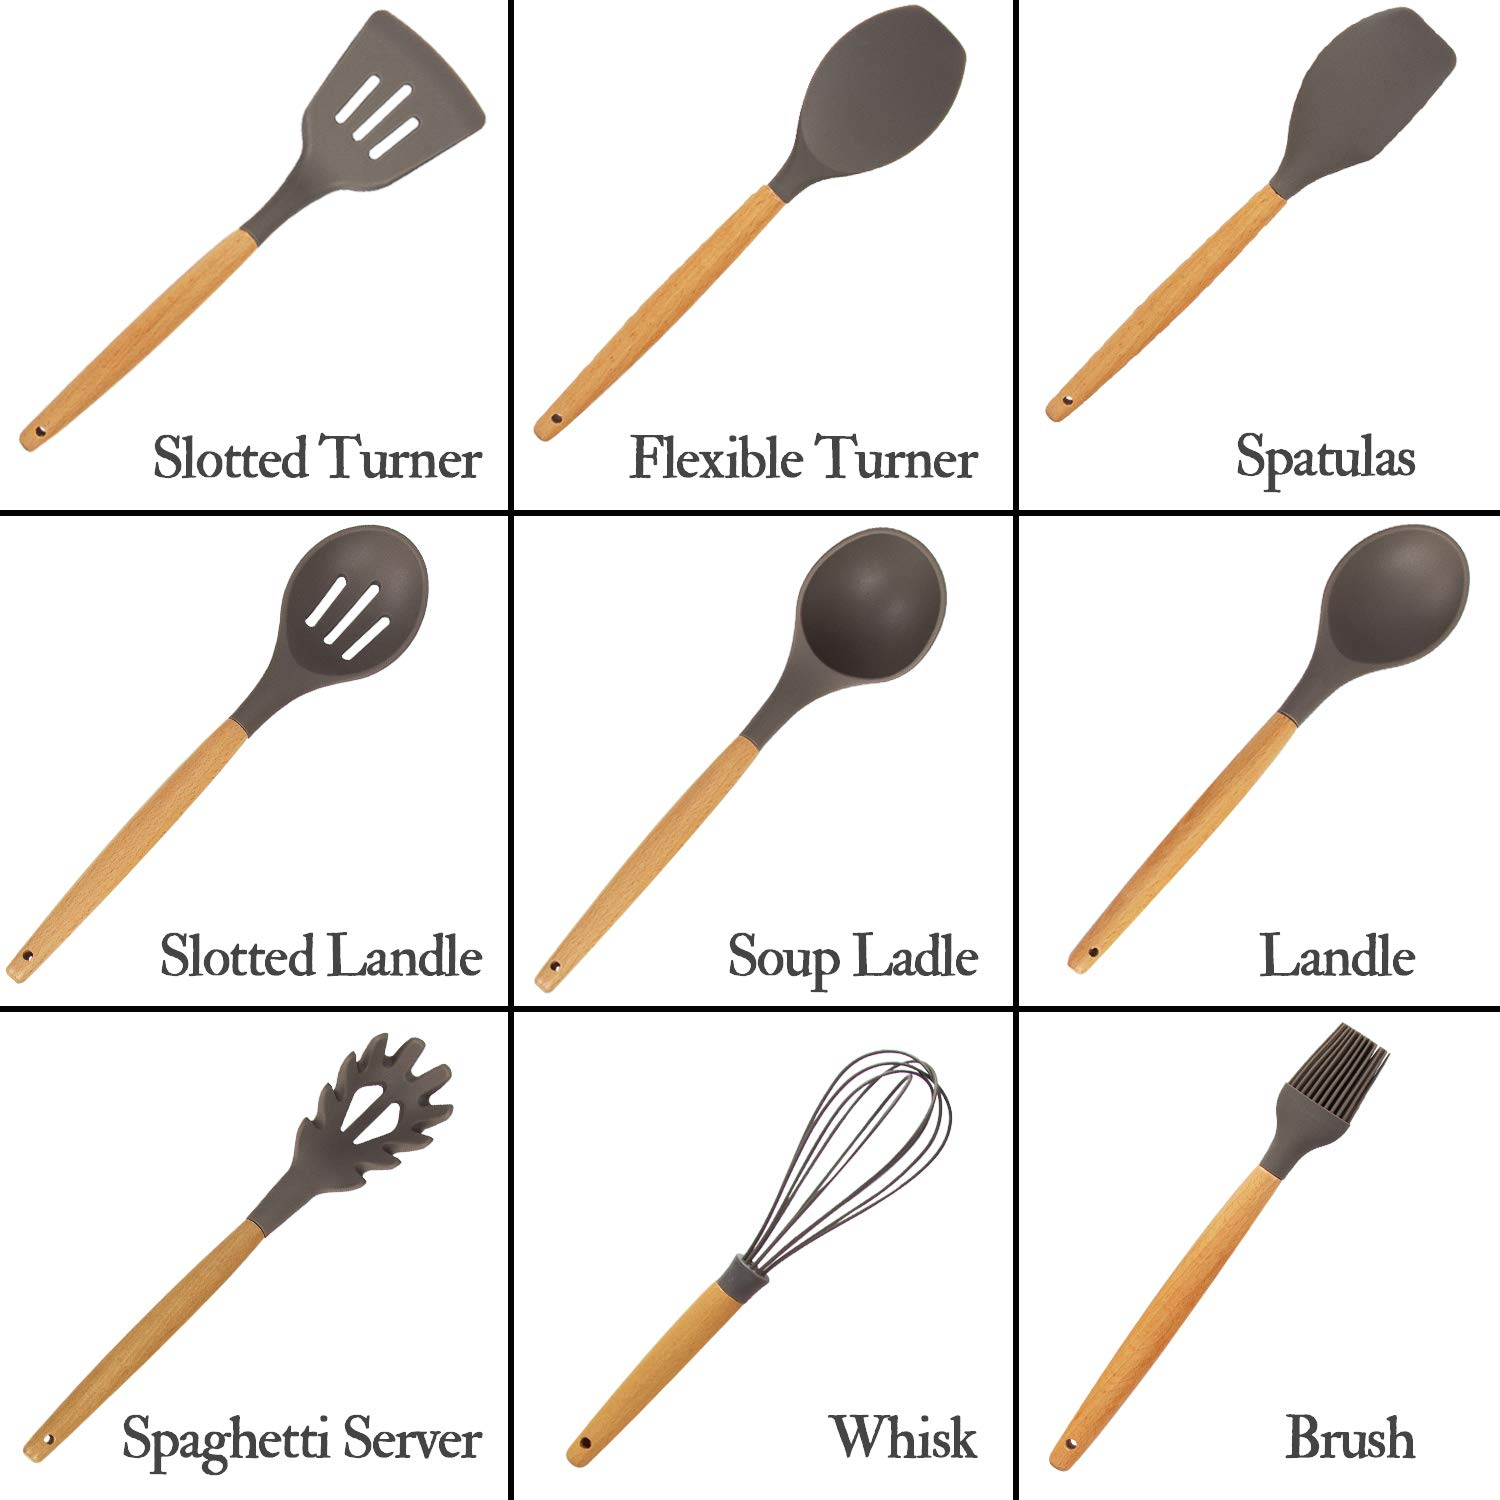 K Kwokker 11 Pieces Silicone Cooking Utensils Kitchen Utensil Set Baking Wooden Utensils Set for Nonstick Cookware,BPA Free Non Toxic Turner Tongs Spatula Spoon Set for Home Kitchen Gadgets Tools